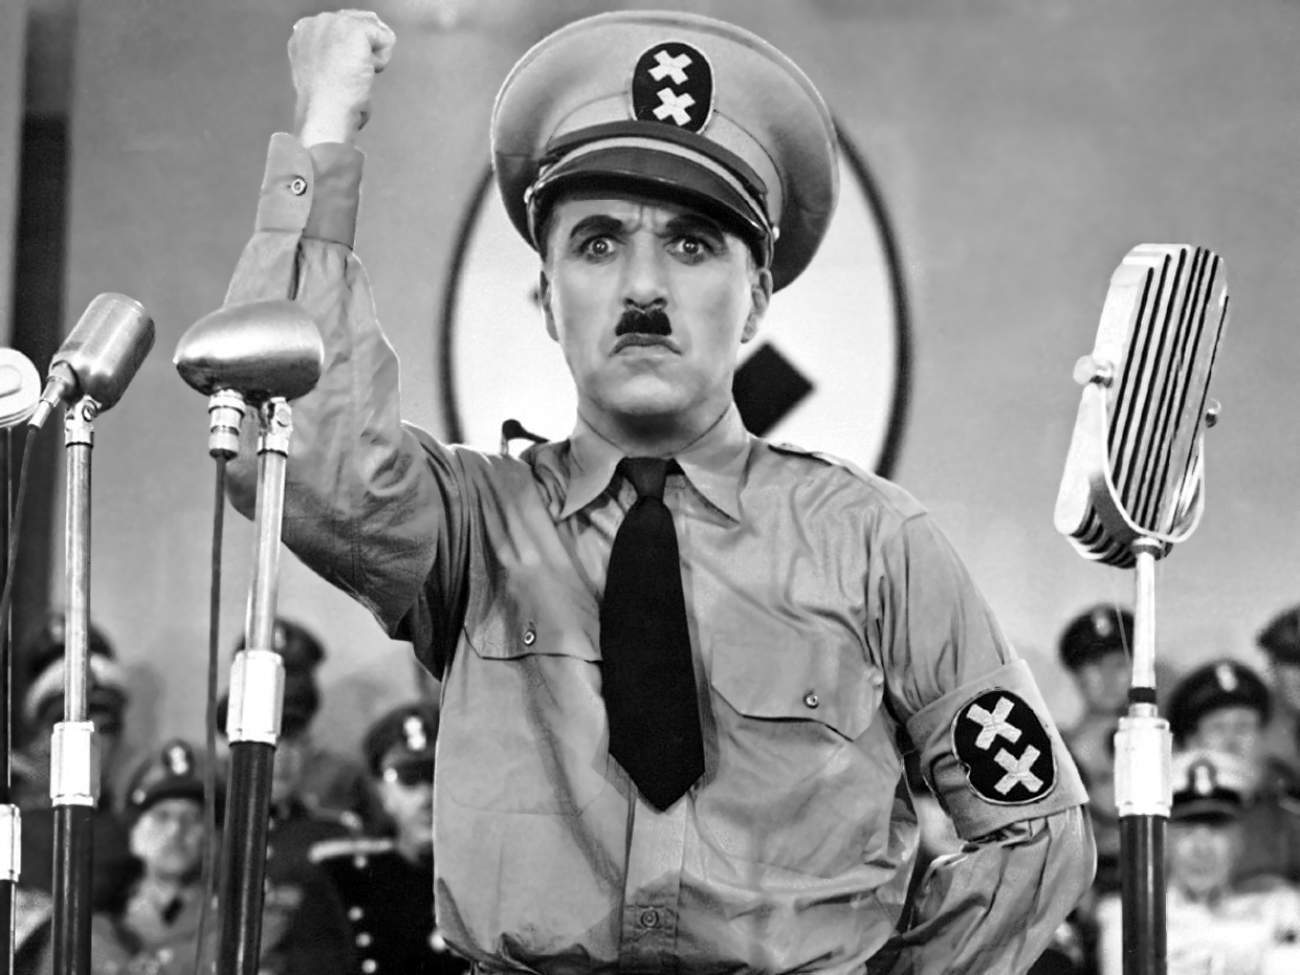 Charlie Chaplin satirizing Adolf Hitler in The Great Dictator